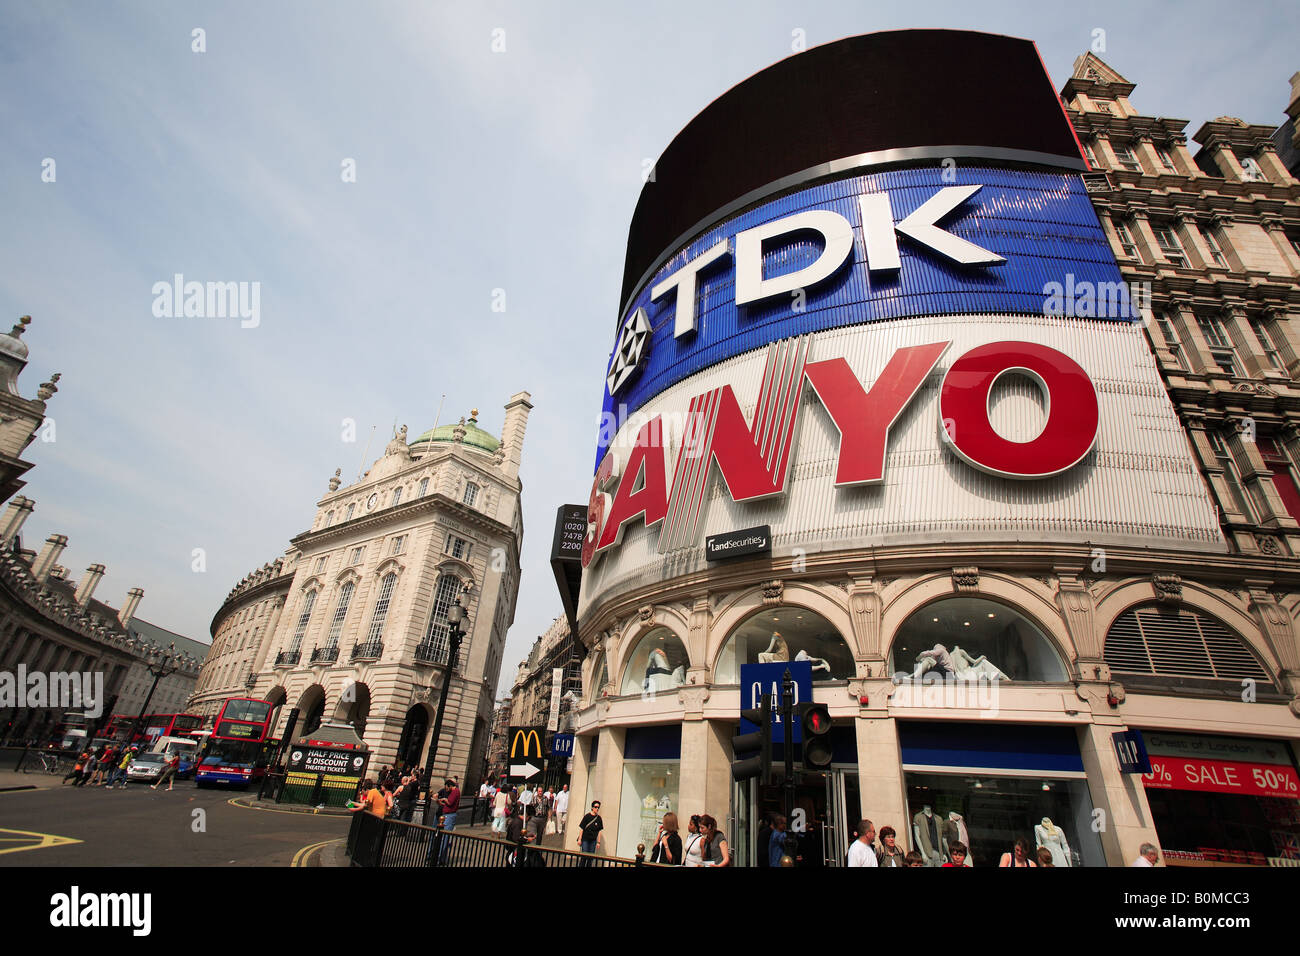 united kingdom west london W1 piccadilly circus - Stock Image